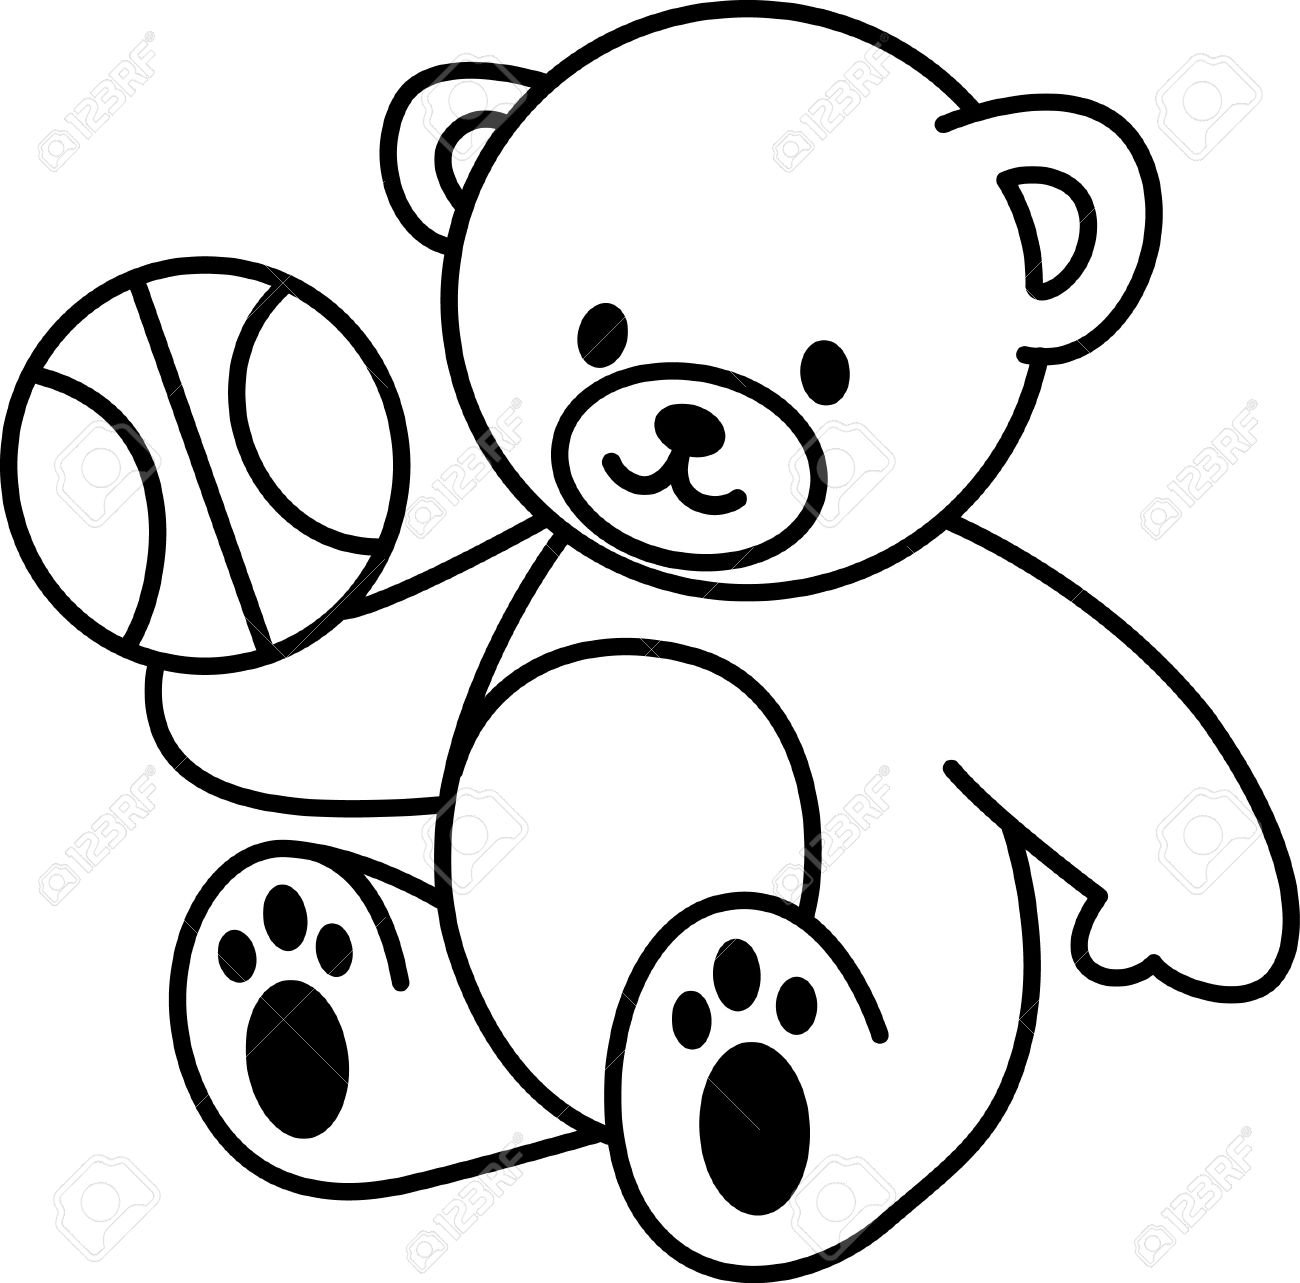 1300x1283 Illustration Of Very Cute Teddy Bear With Basketbal Royalty Free